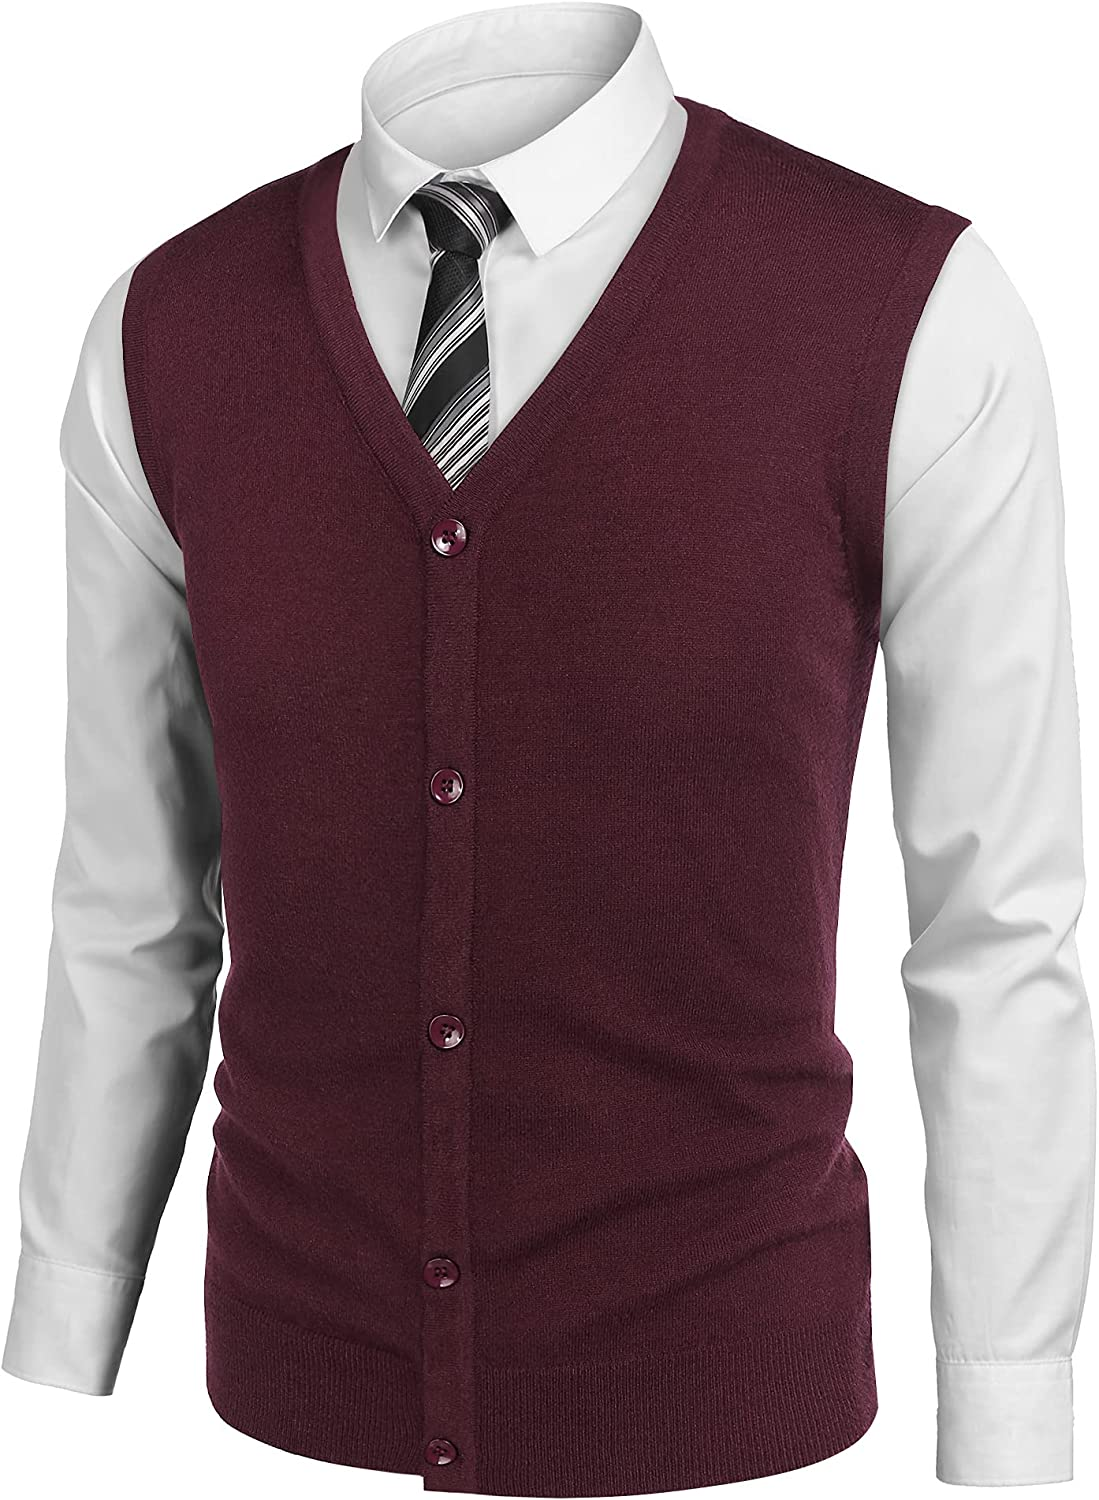 COOFANDY Men's Sweater Vest V Neck Casual Sleeveless Knitted Button Cardigan Vest